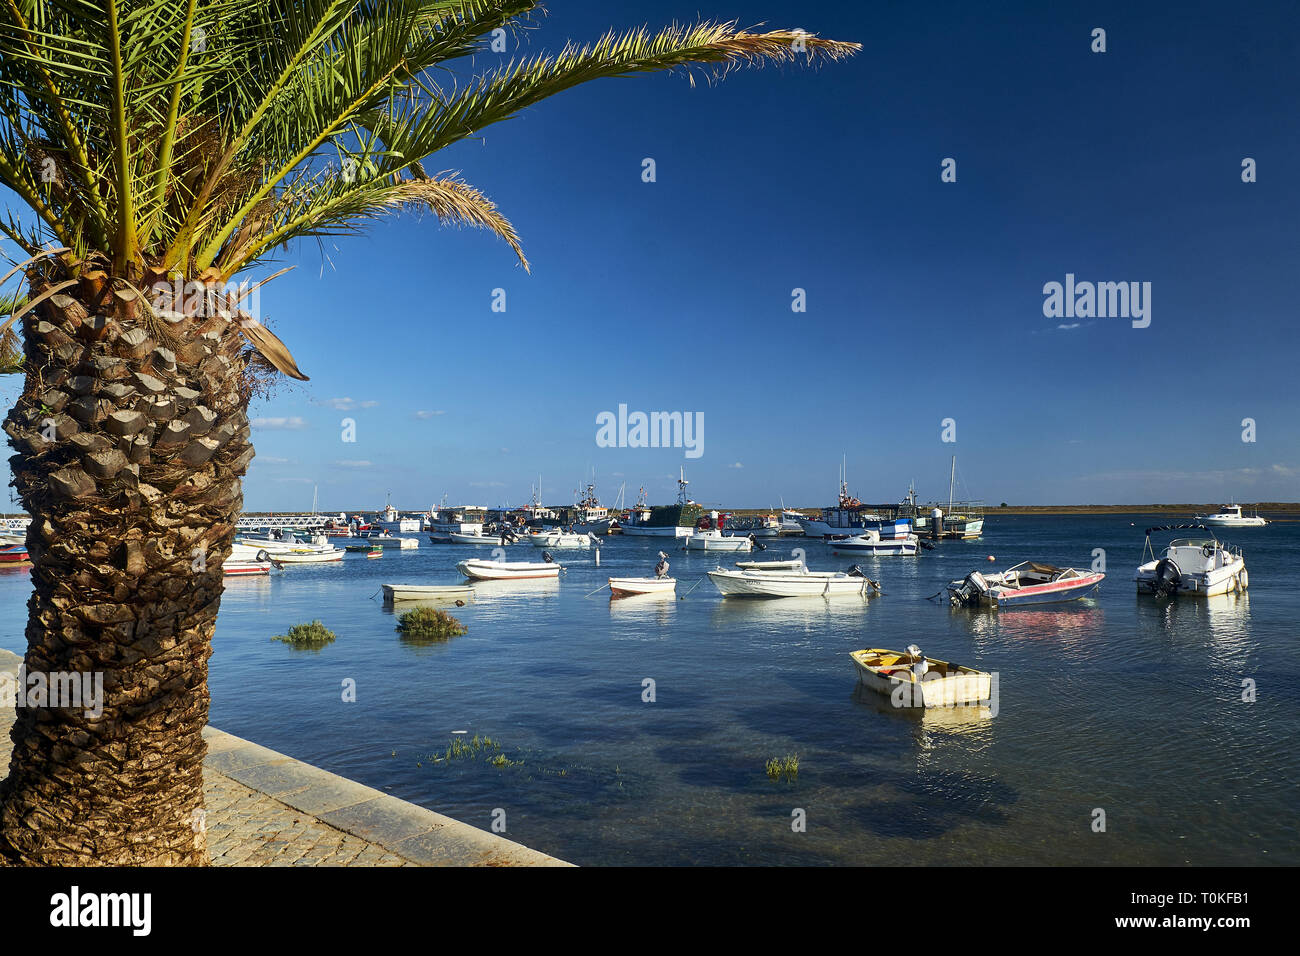 Fishing boats in Santa Luzia near Tavira, Fraro, Algarve, Portugal Stock Photo